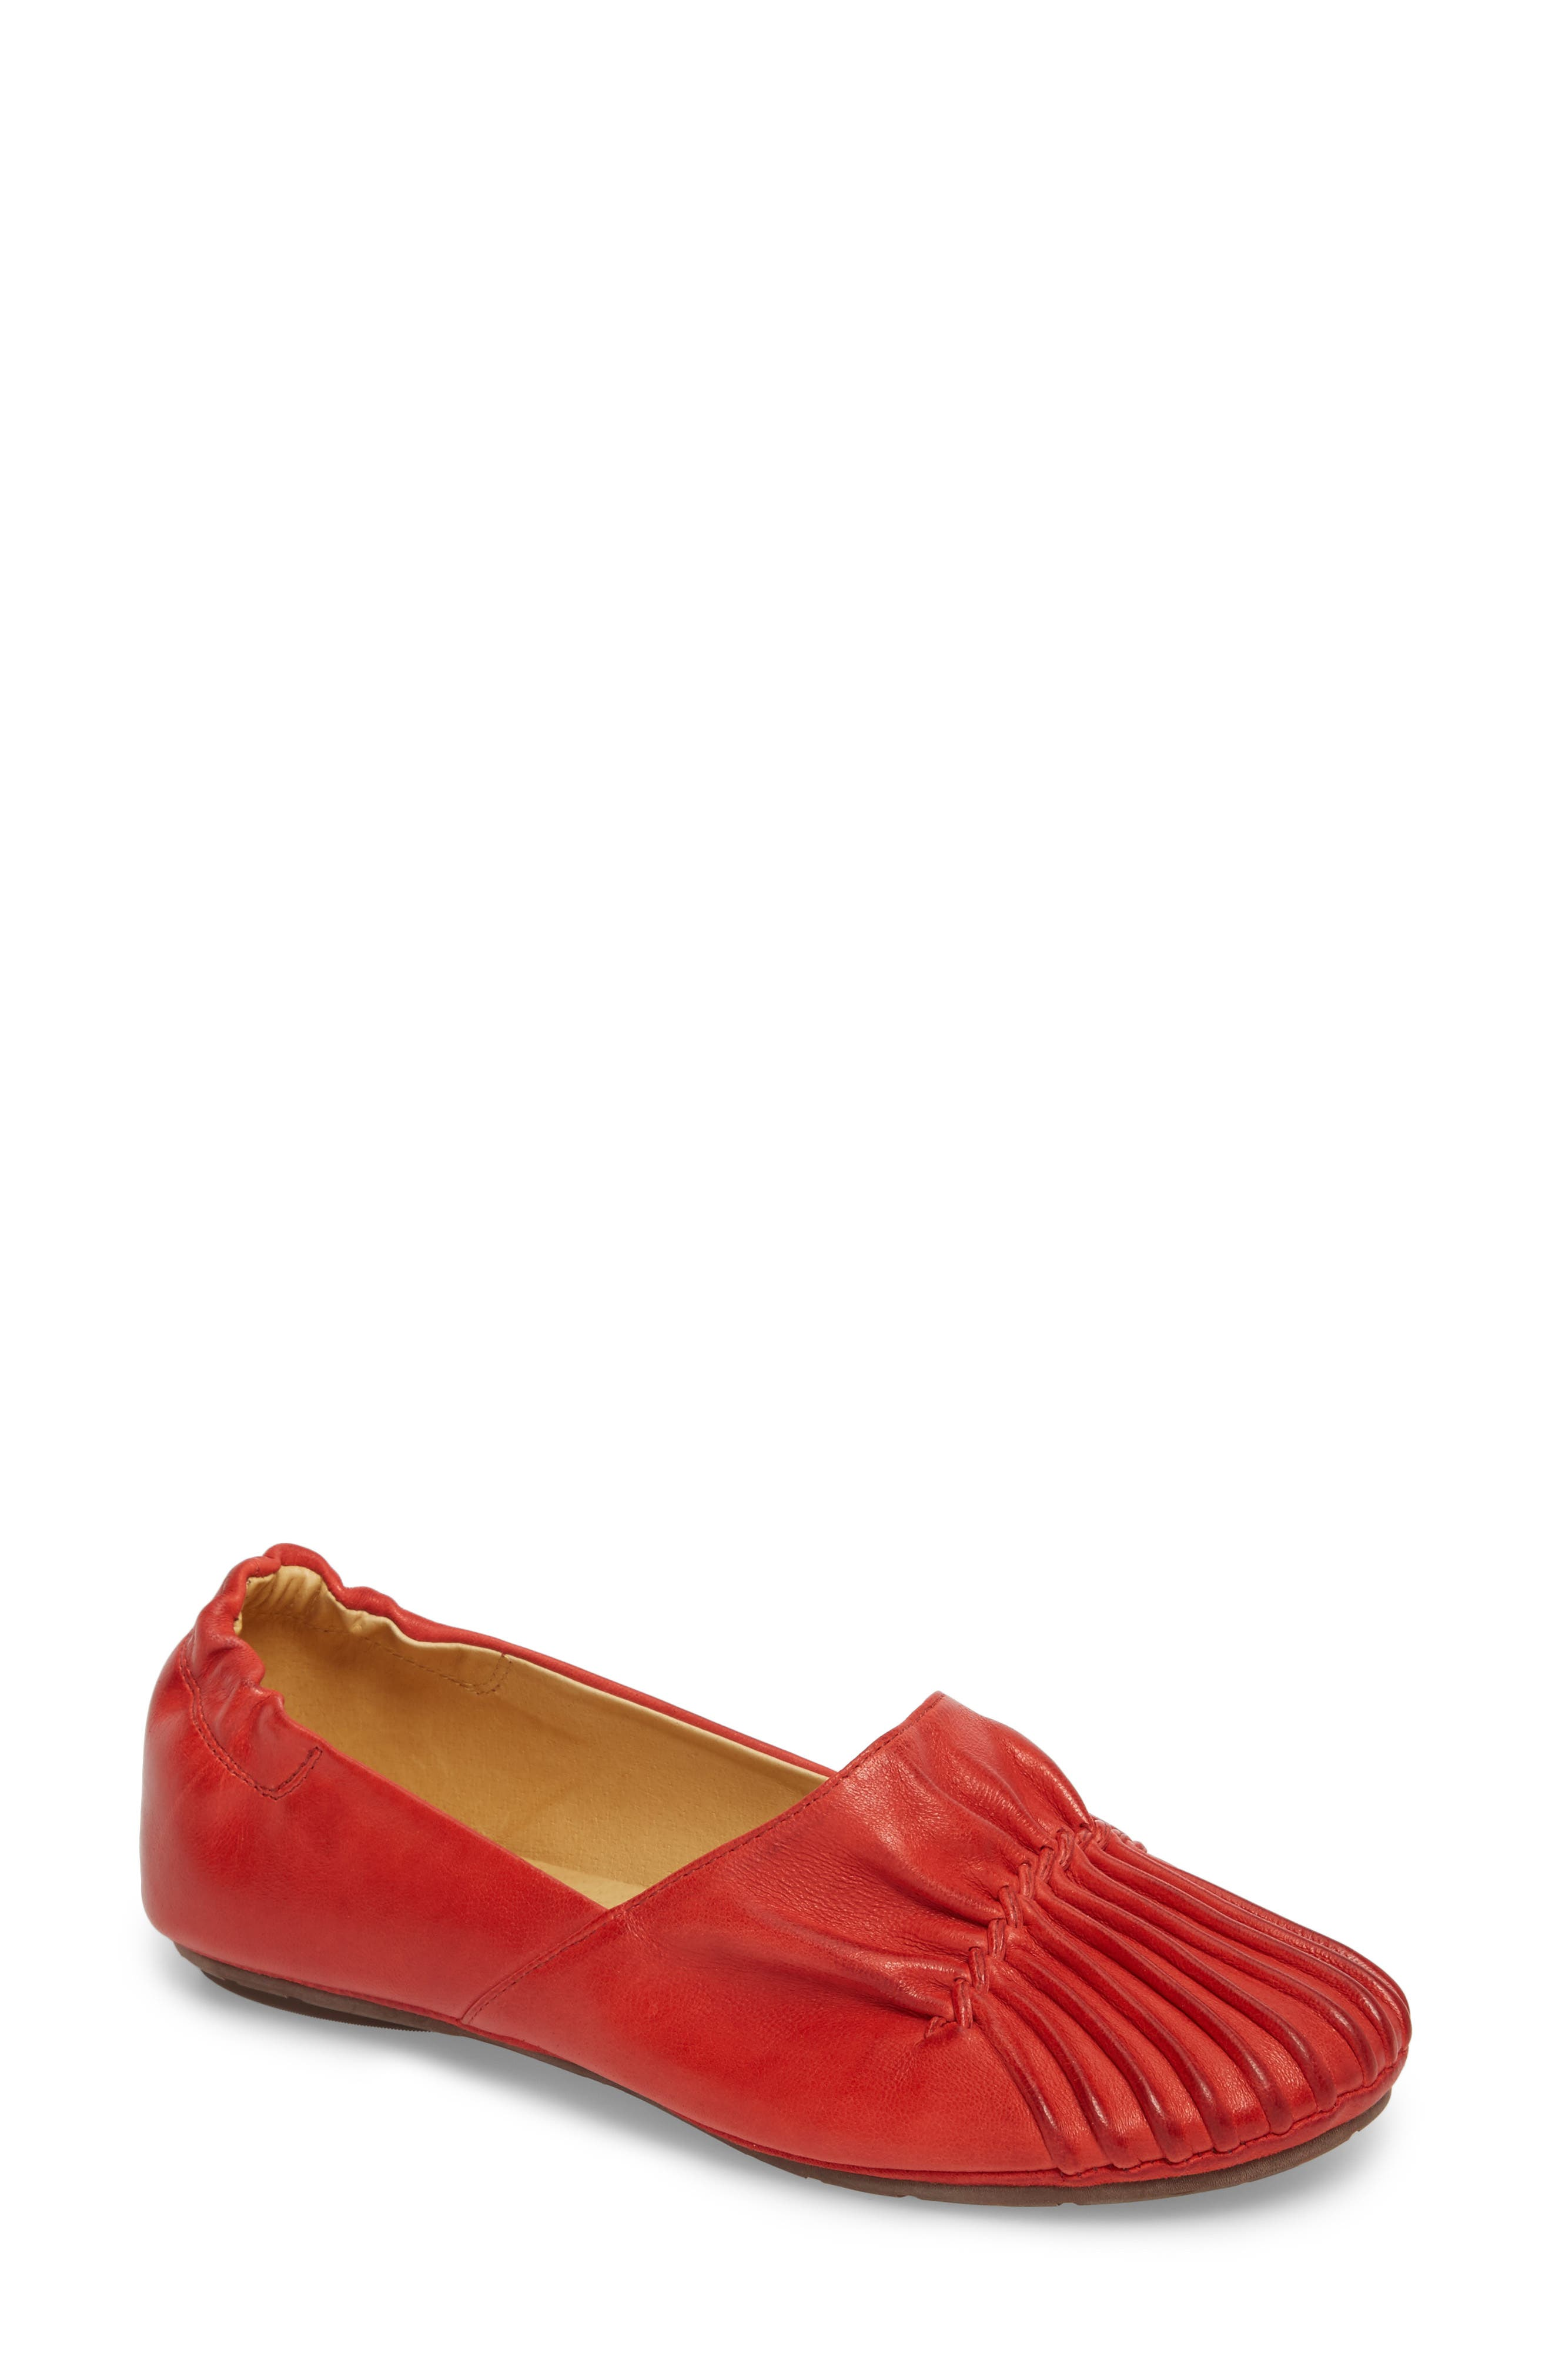 CHOCOLAT BLU Cam II Pleated Flat, Main, color, RED LEATHER